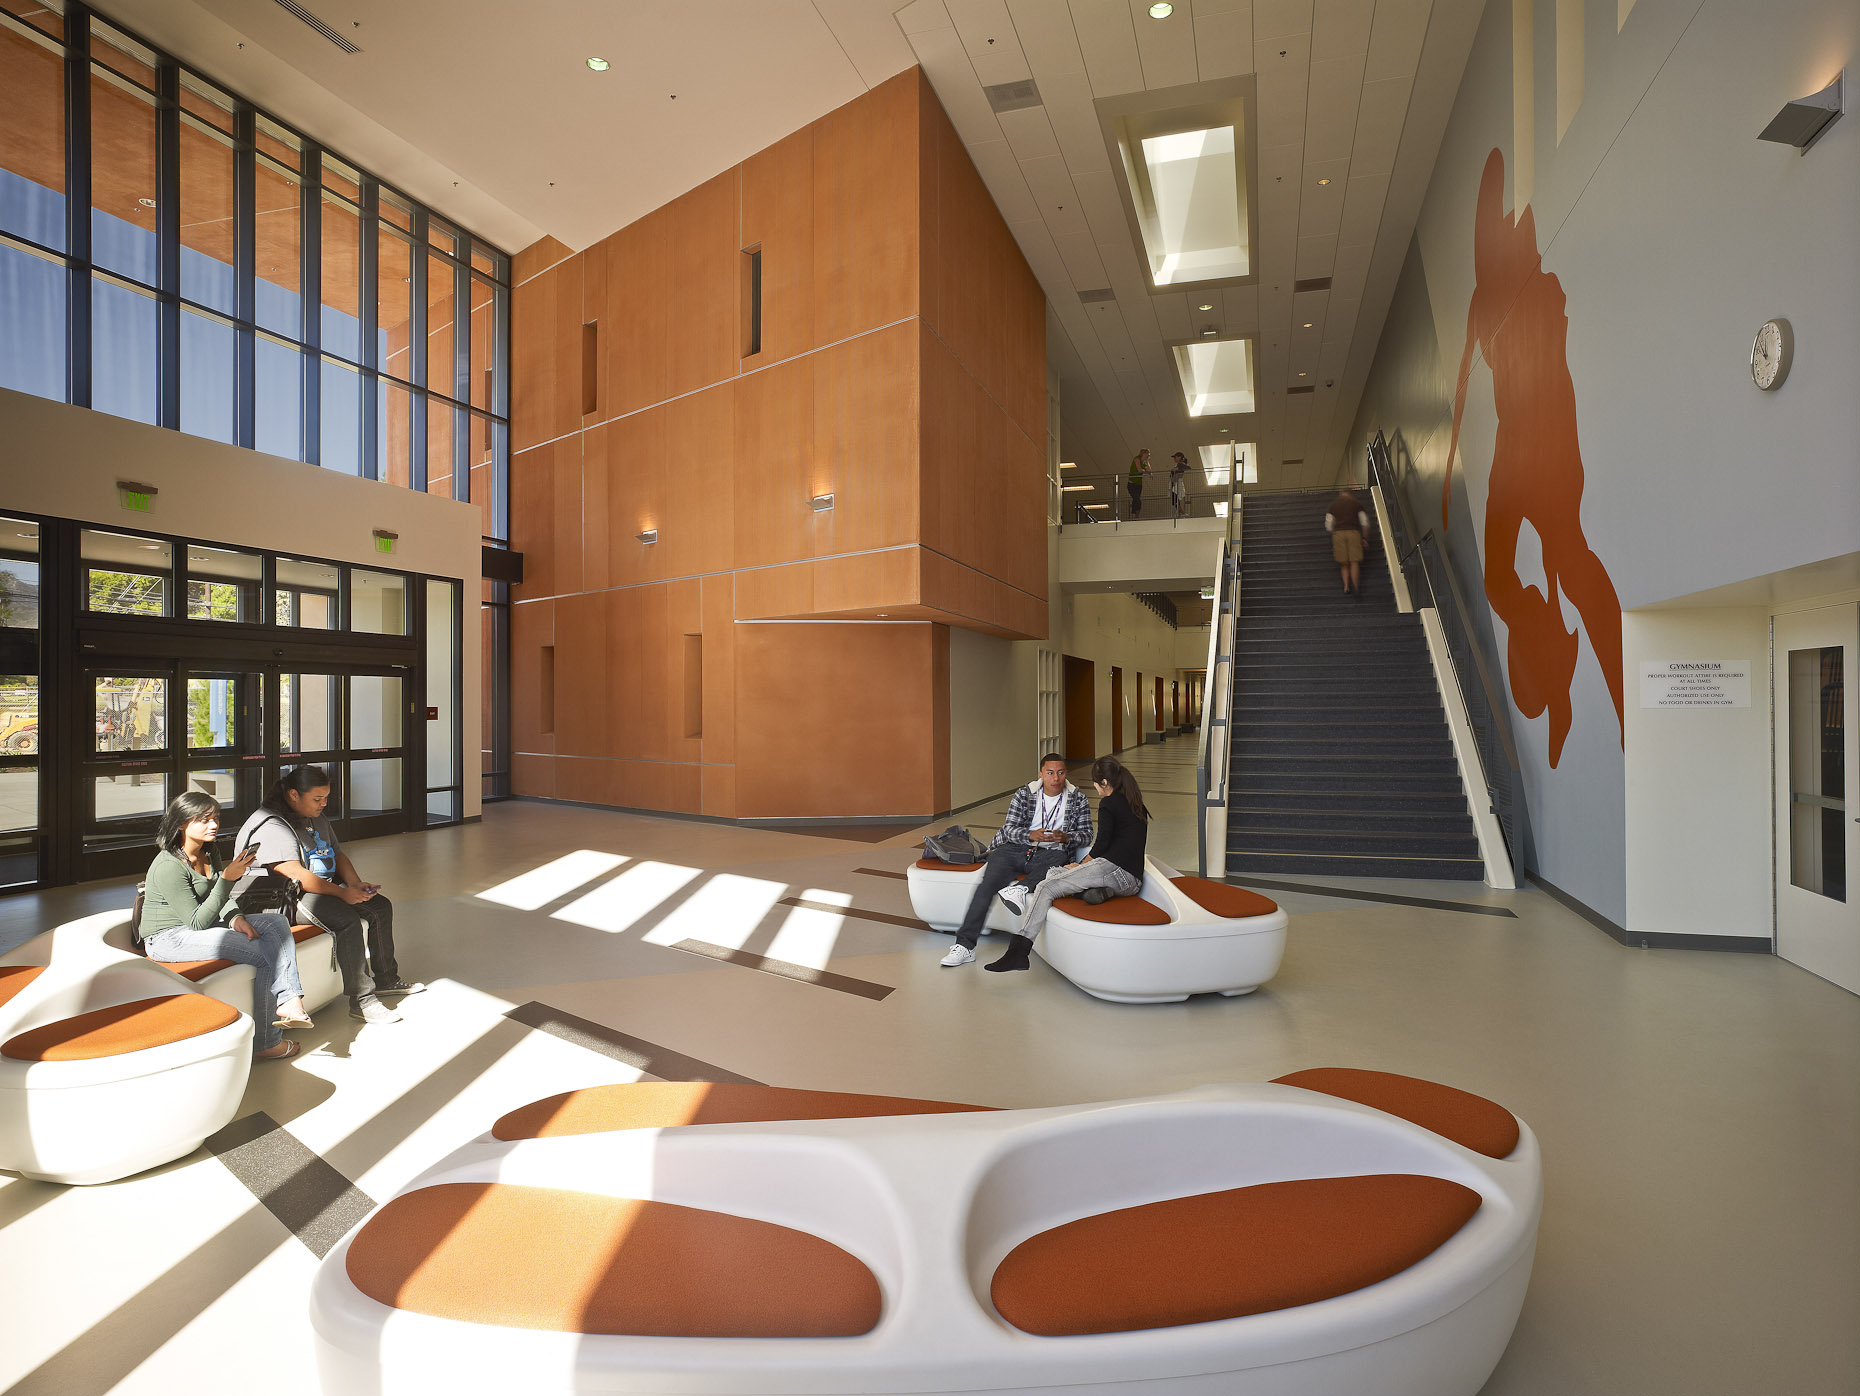 Mission College by Cannon Design Photographed by Brad Feinknopf based in Columbus, Ohio